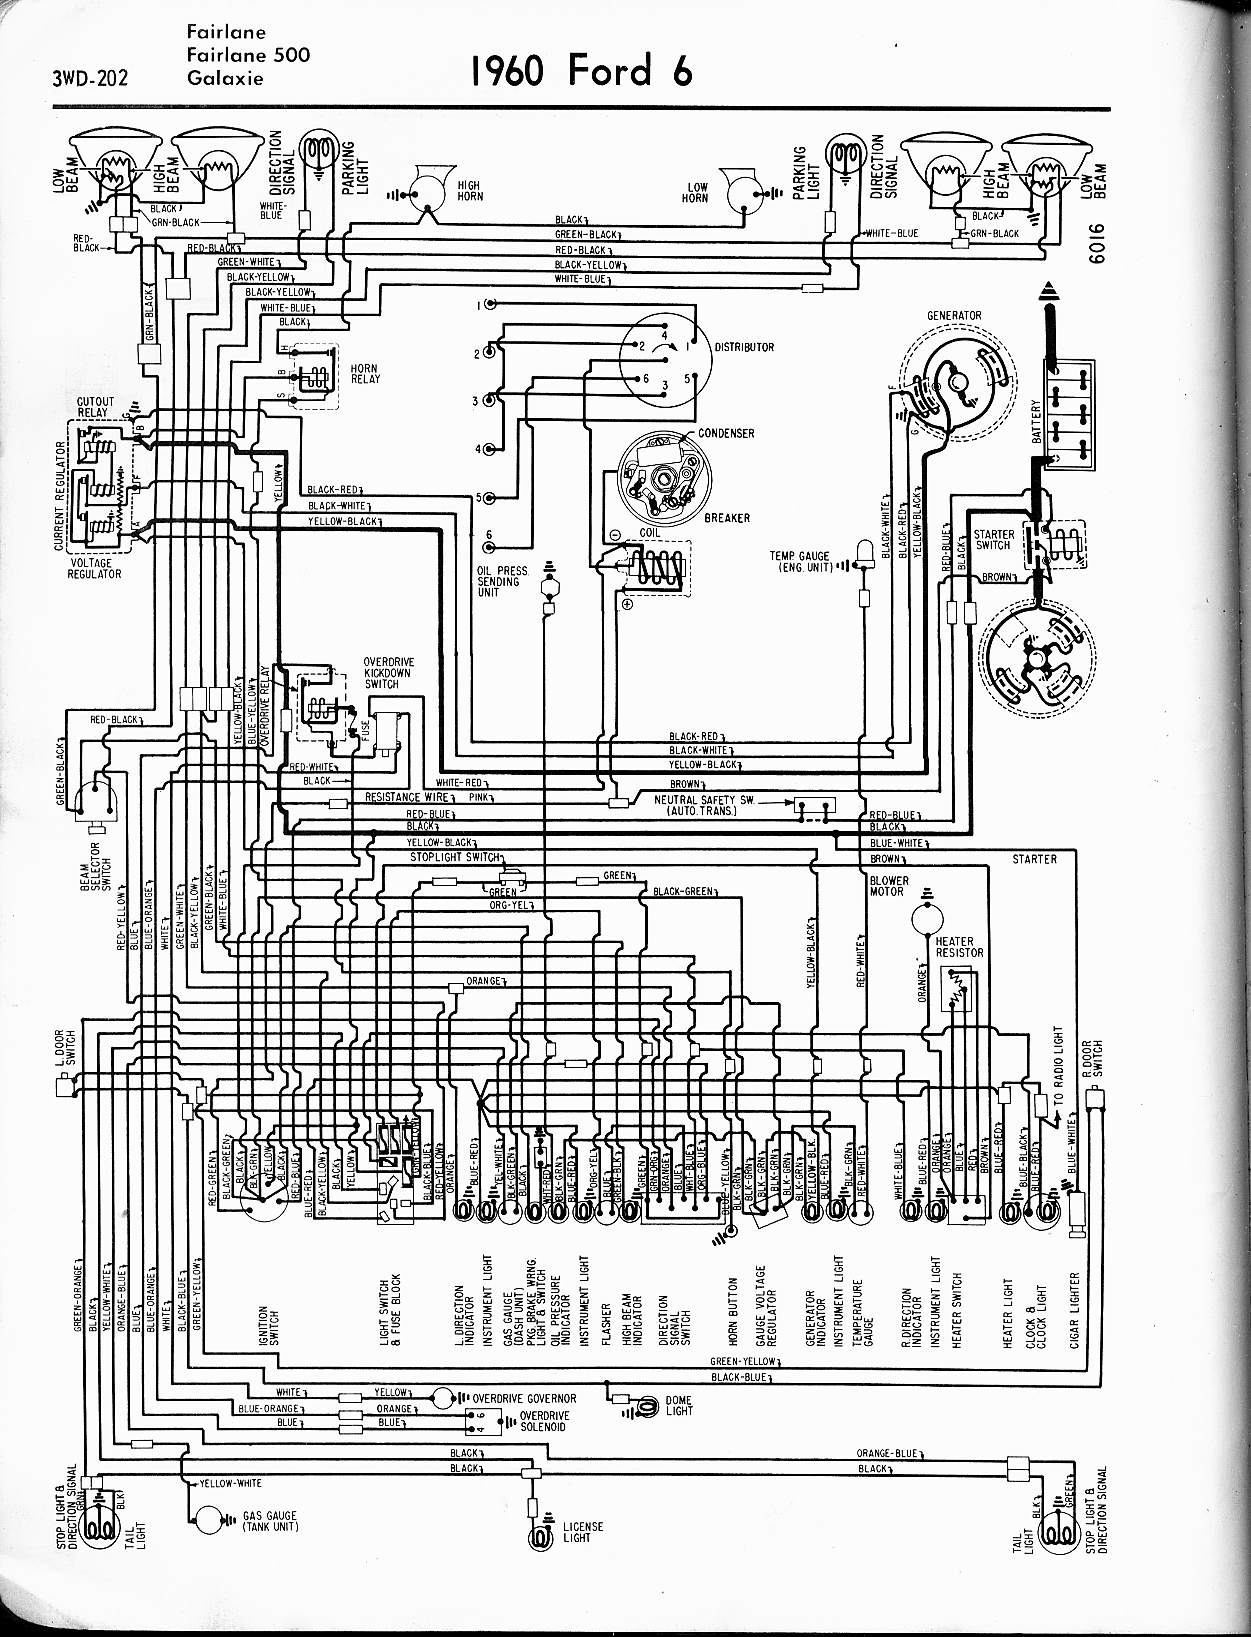 MWire5765 202 57 65 ford wiring diagrams ford truck wiring diagrams at suagrazia.org